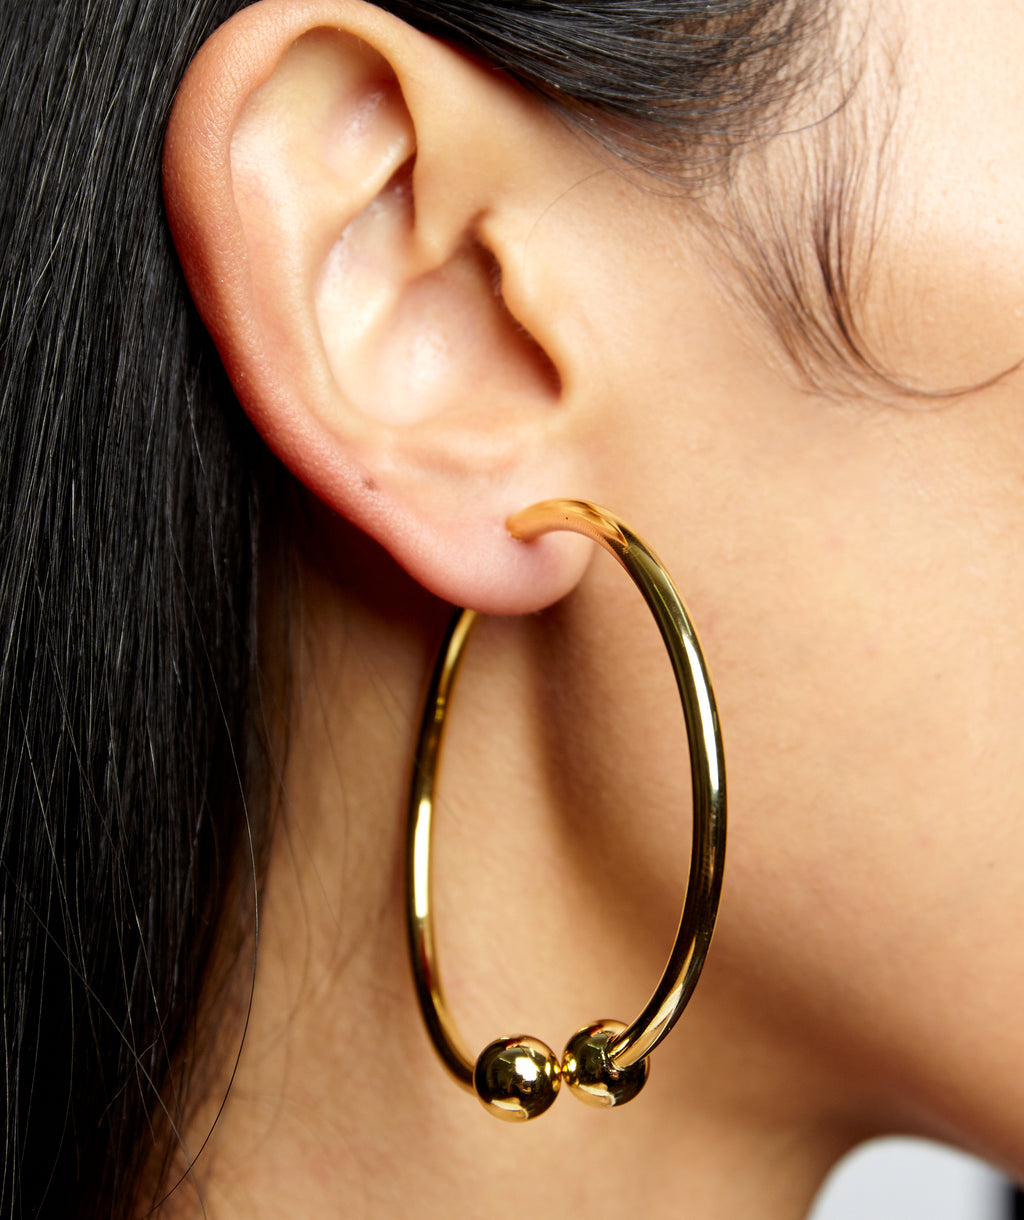 PIERCING HOOP EARRINGS